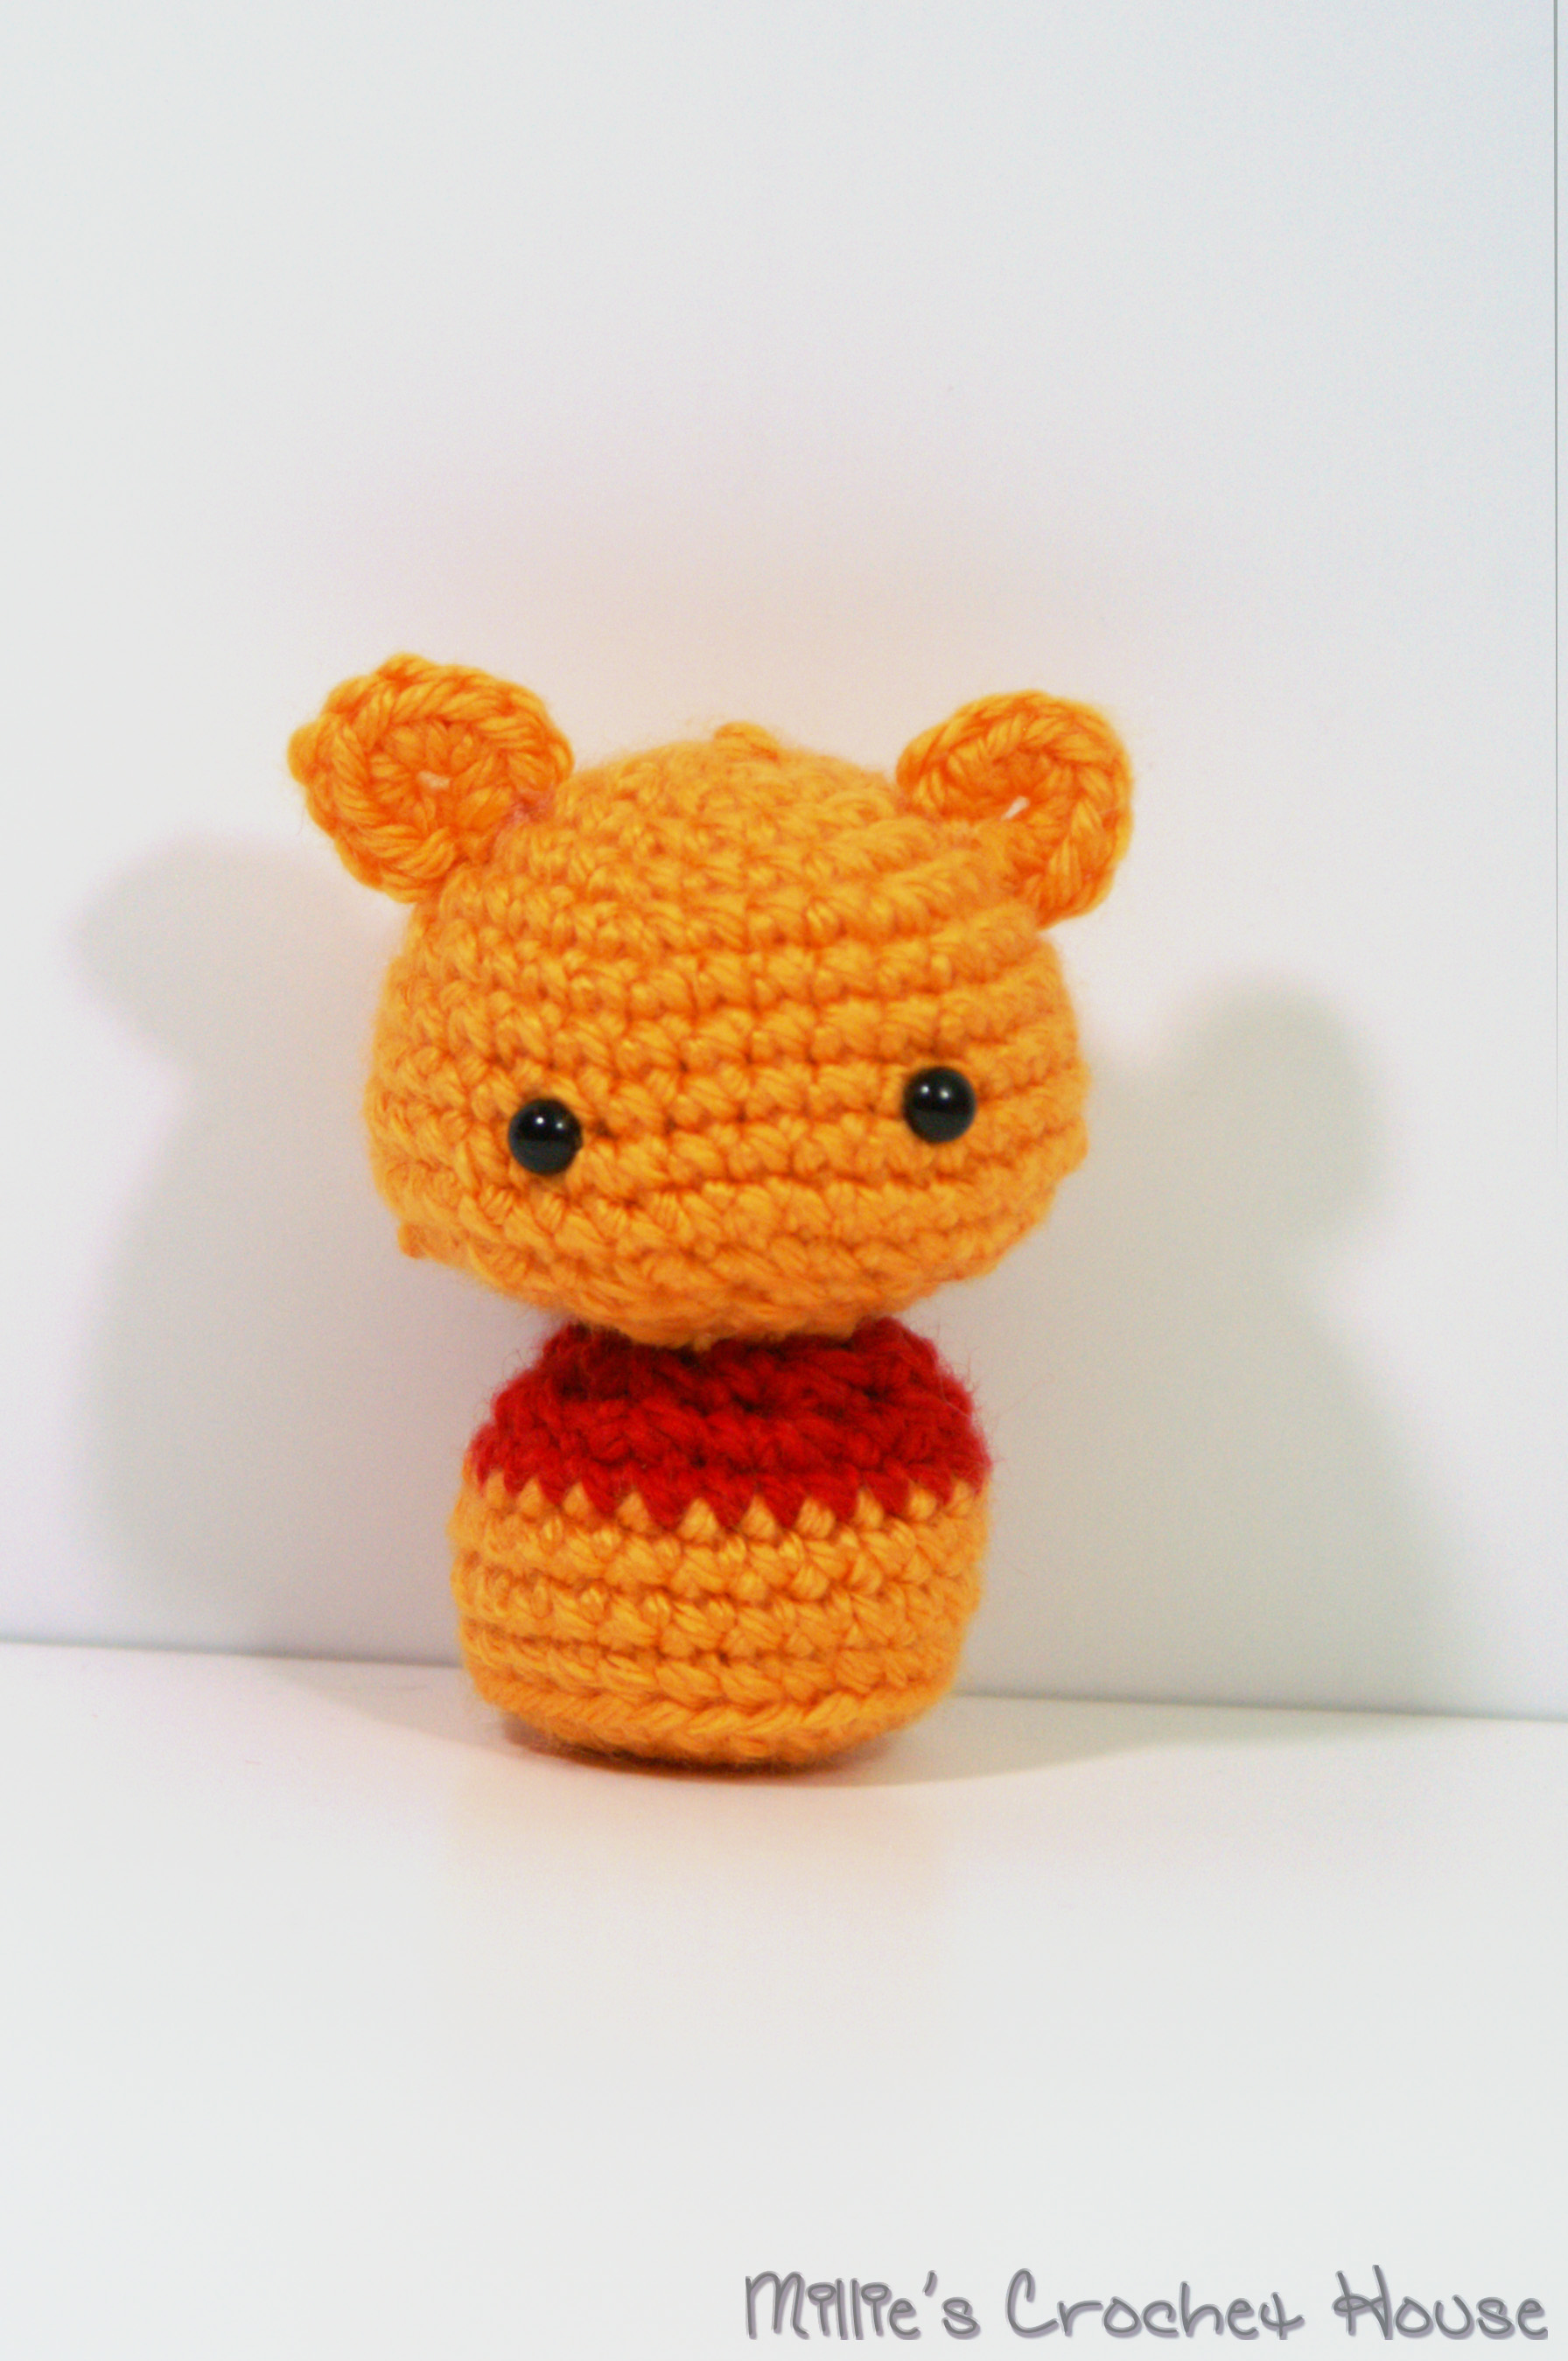 Amigurumi Doll House : Crochet Pooh and Piglet - Amigurumi Dolls Chibi ? Millies ...